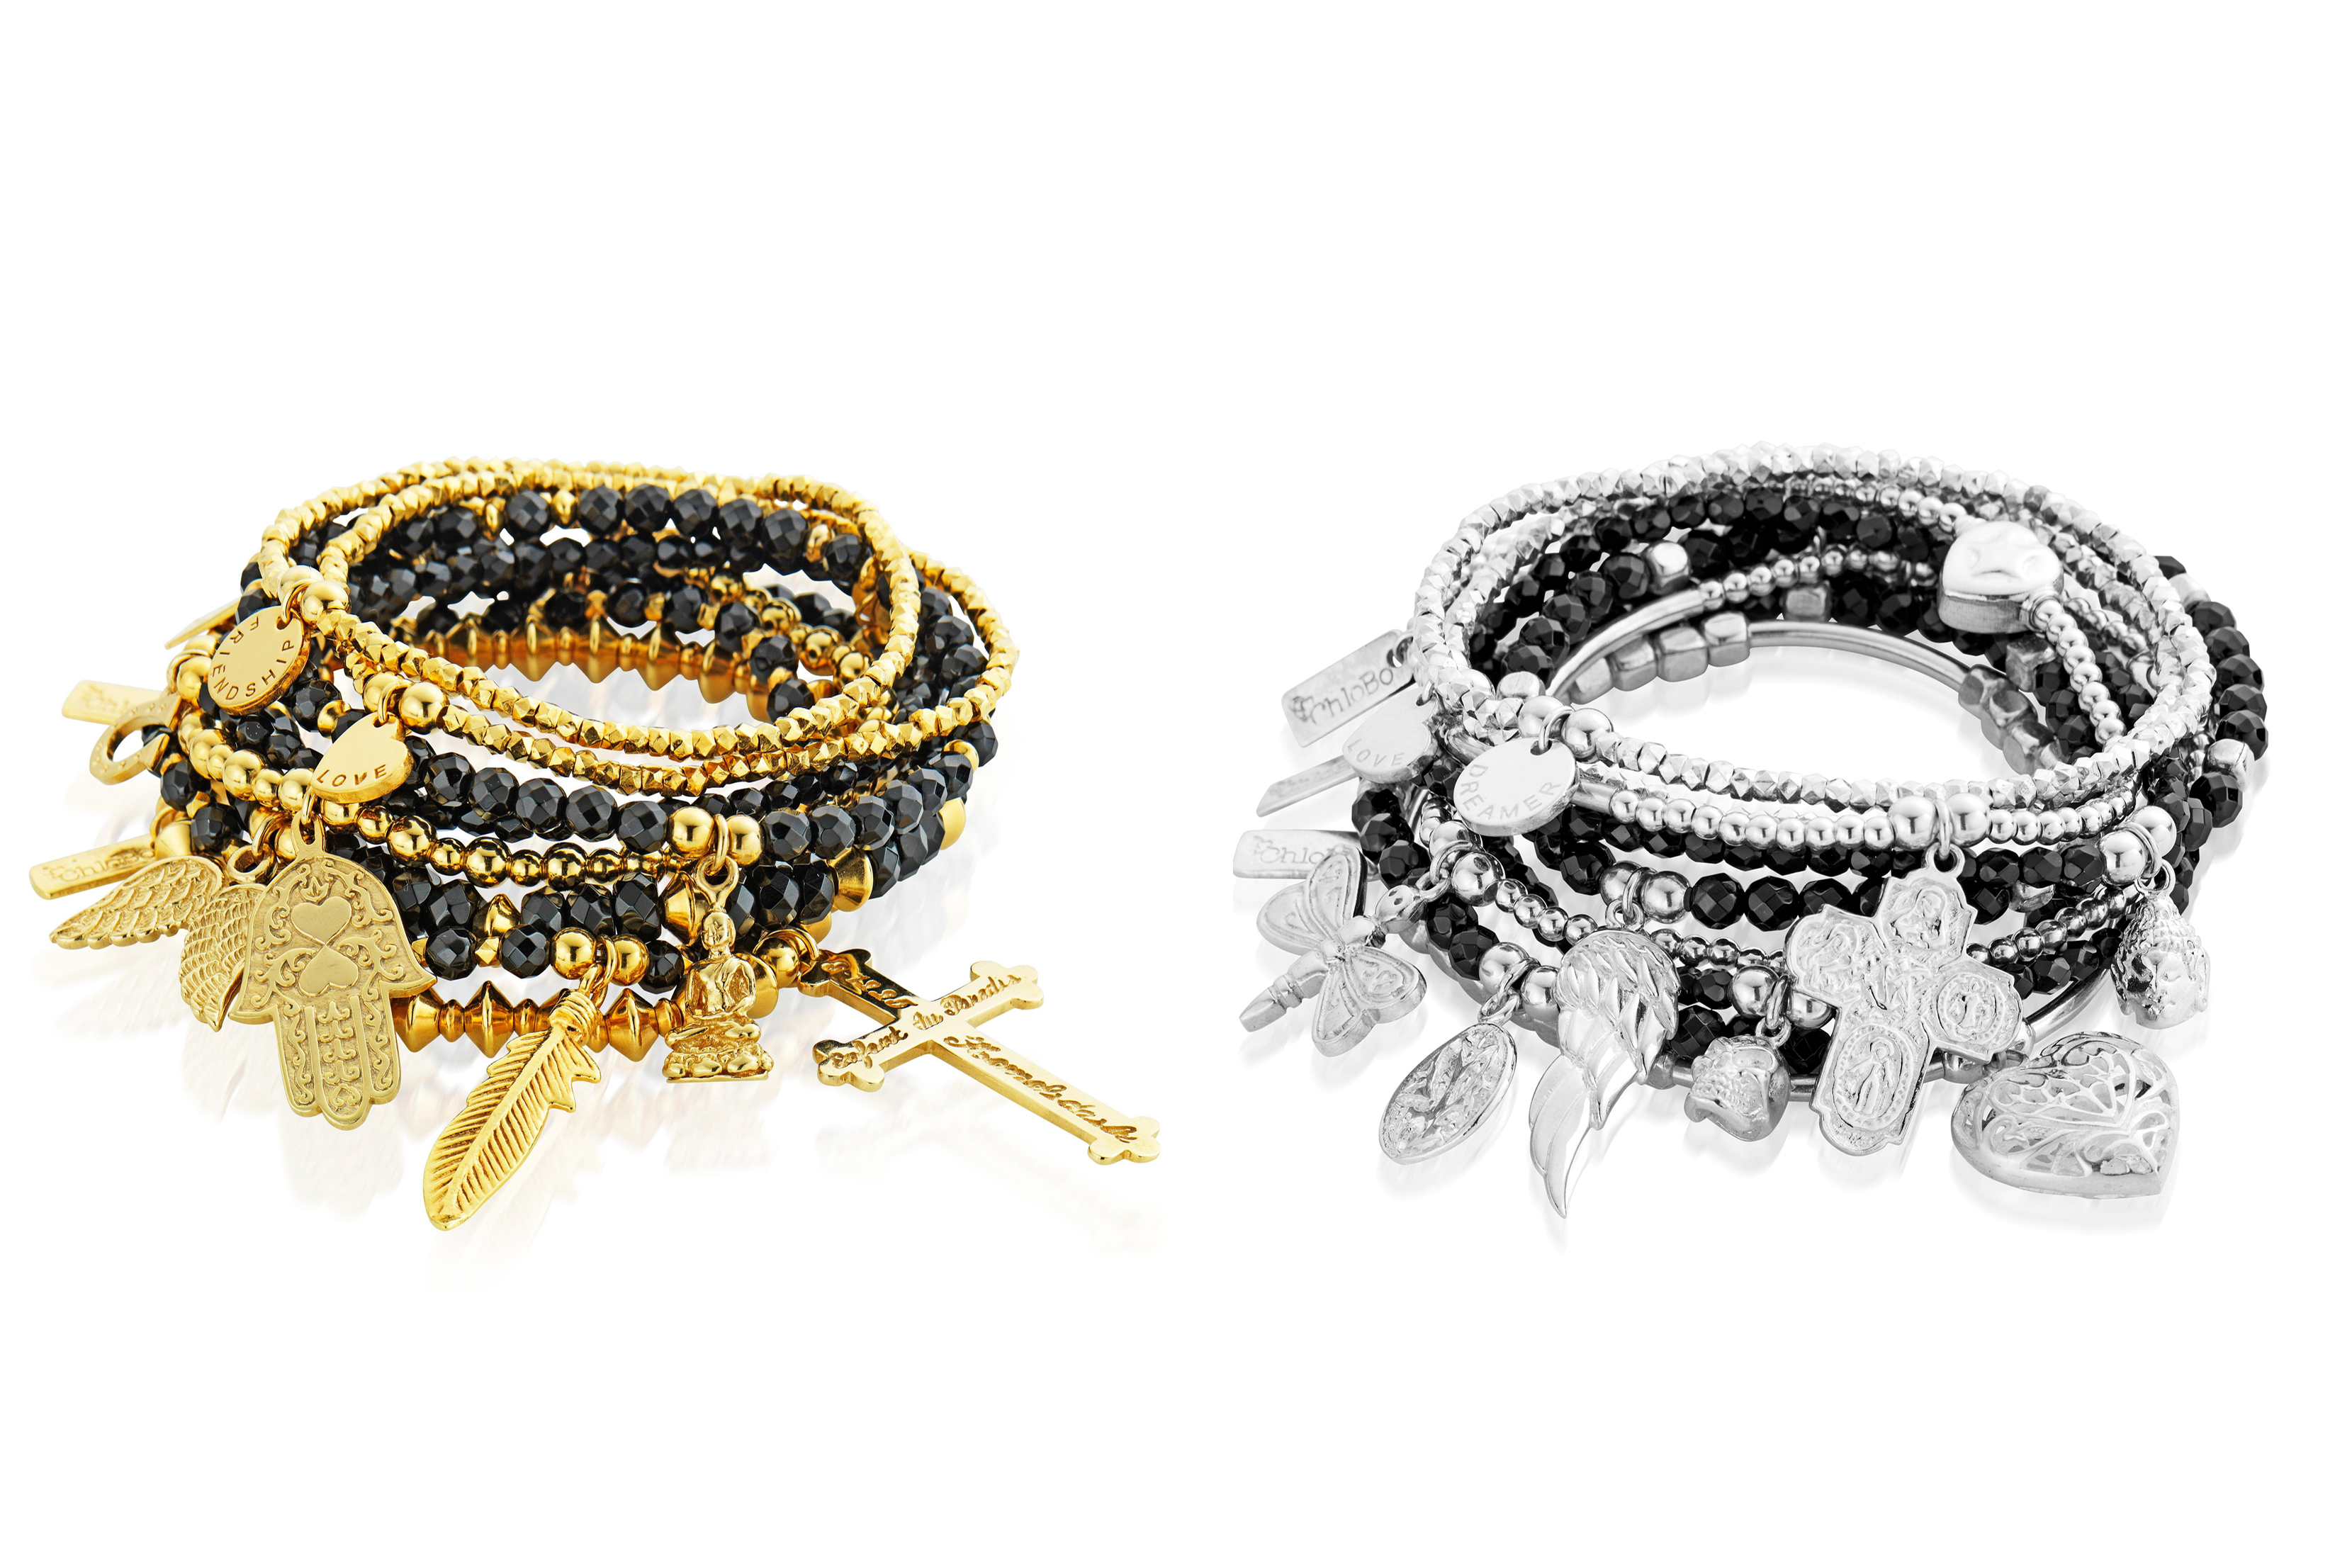 Friday Treat Competition: Win A Stack Of Bracelets From ChloBo's New Lucky 13 Collection